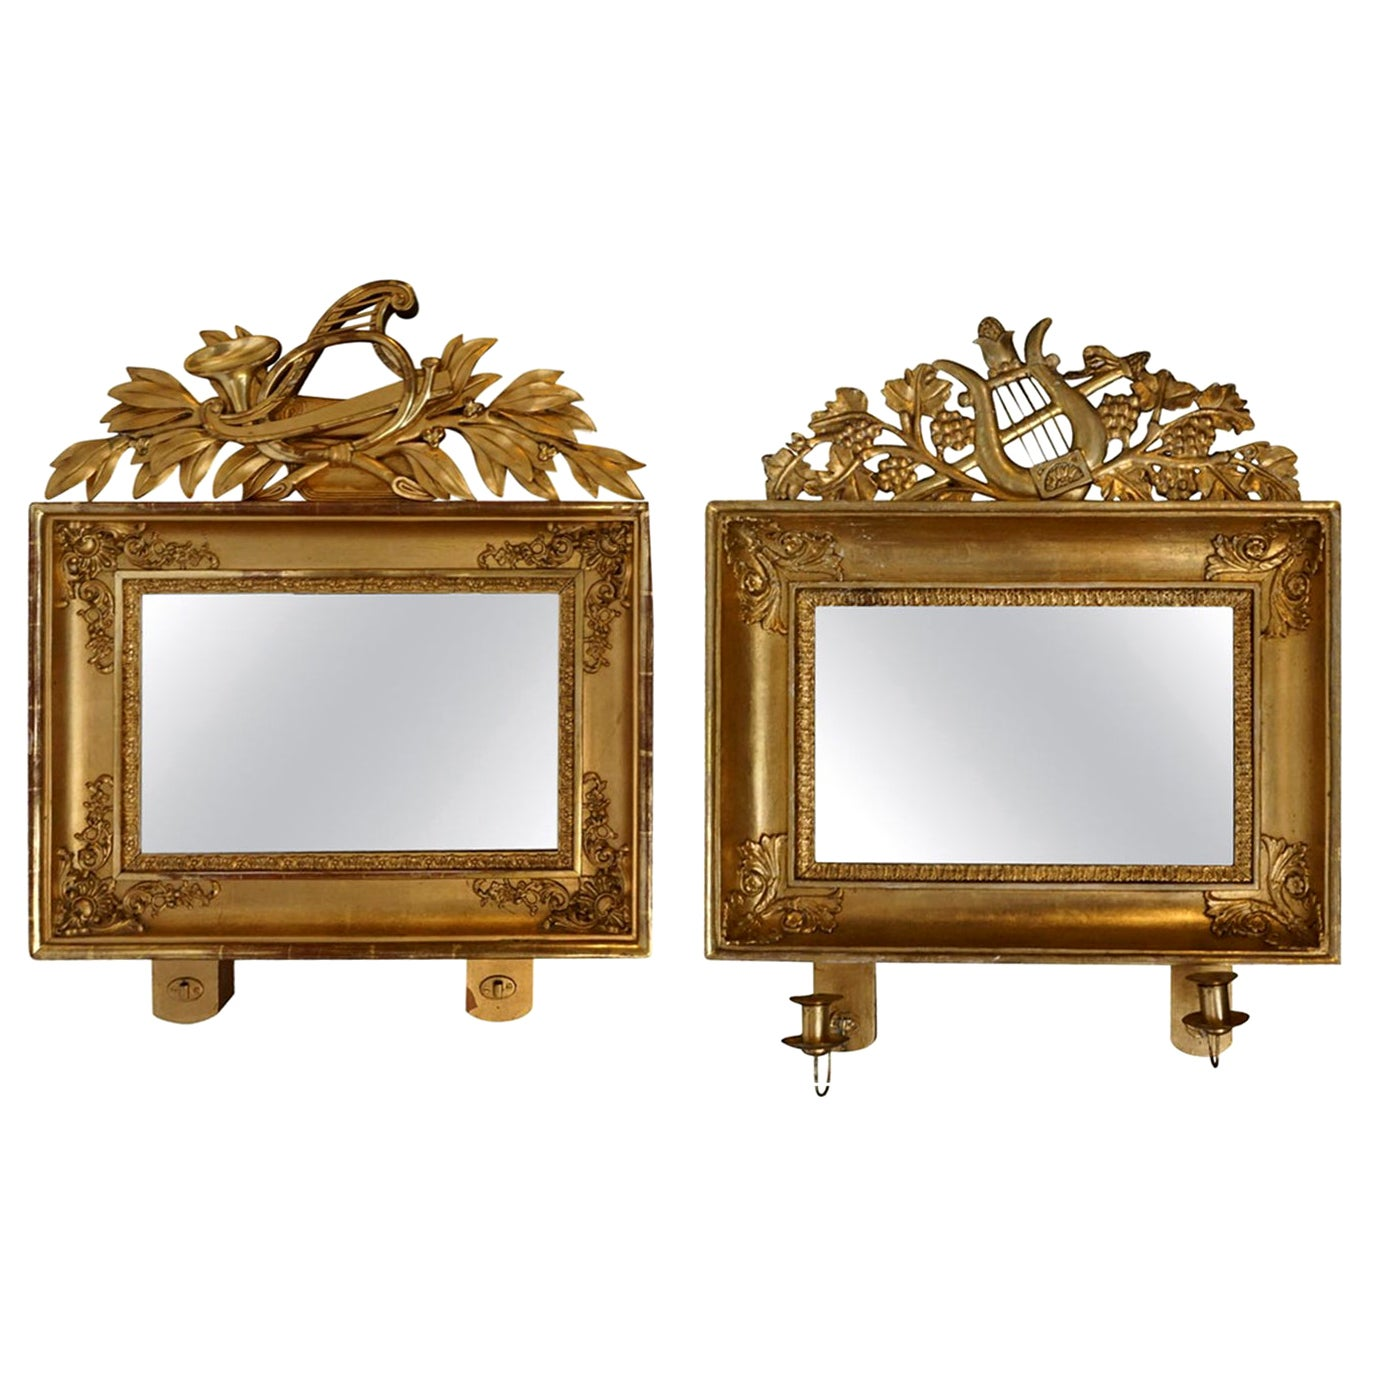 19th Century Swedish Pair of Gilded Wood Wall Mirrors